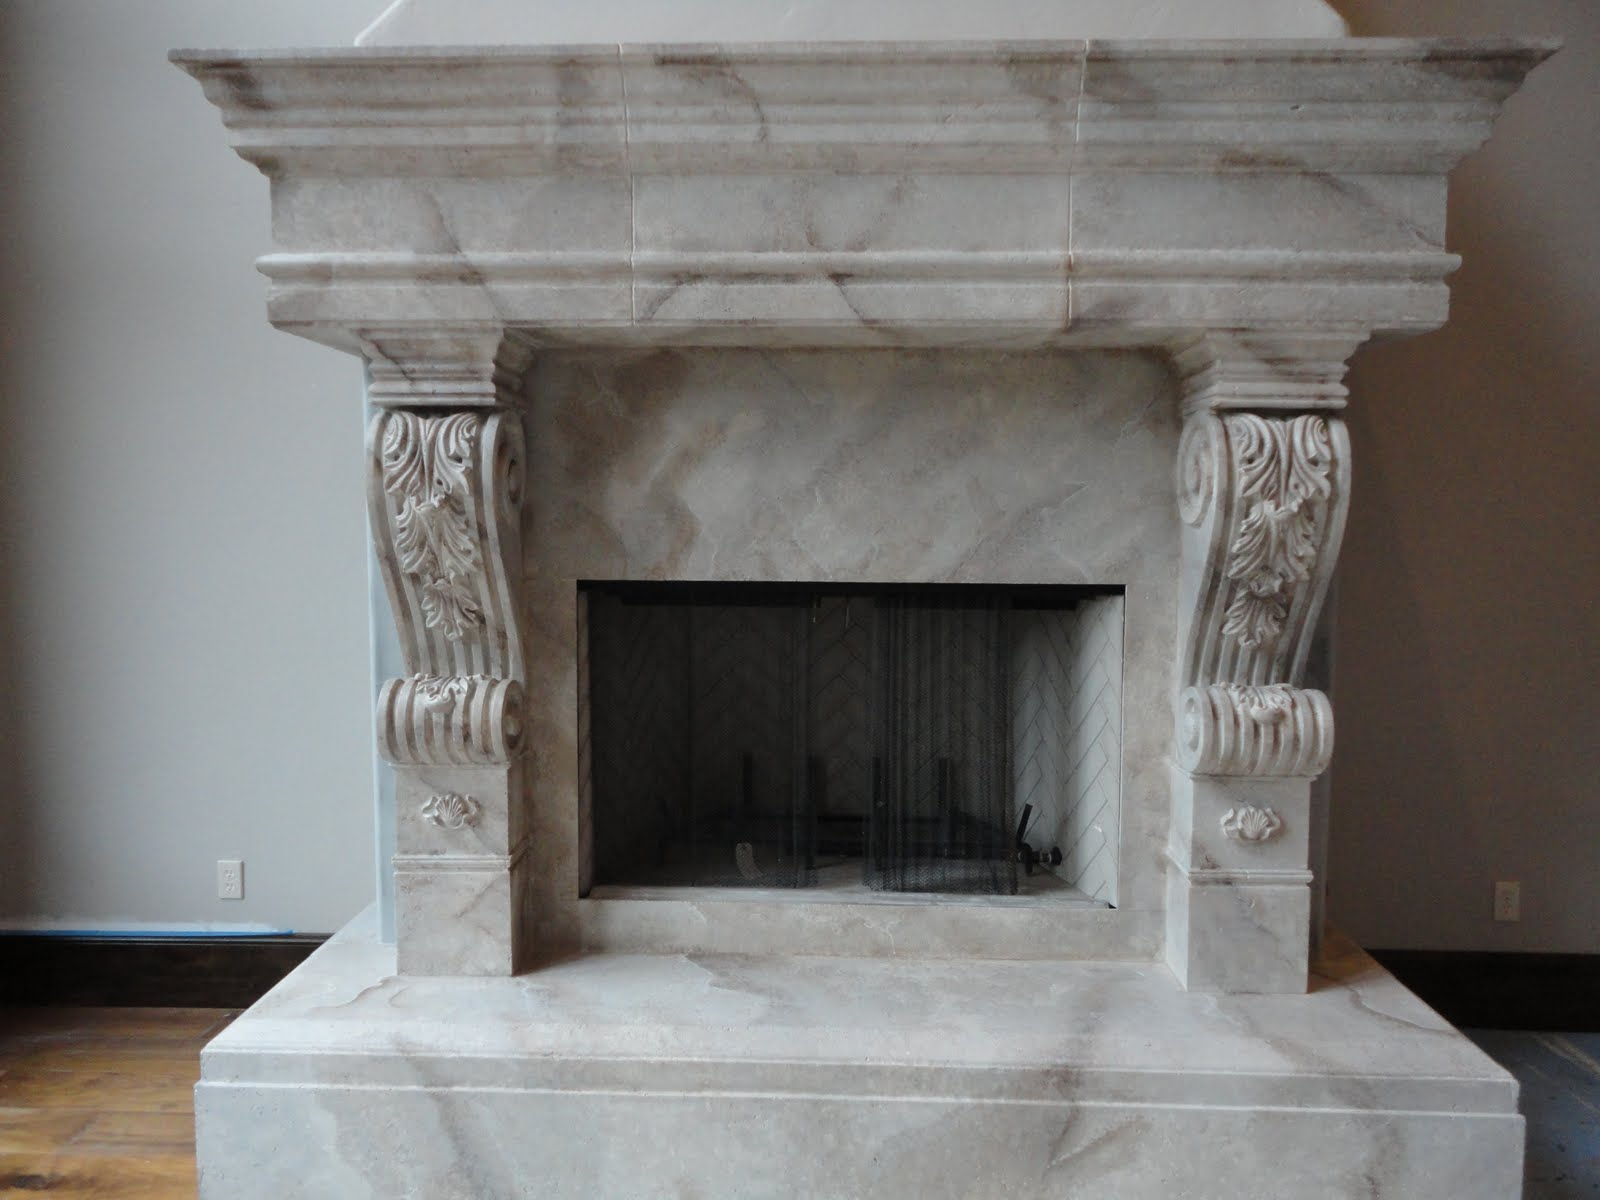 over interior your cast mantel and with cabinet of completing connected shelf mantels rectangle brown beige fabulous metal hearth black stone room wooden living floating by on designed fireplac design also for firebox fireplace designs